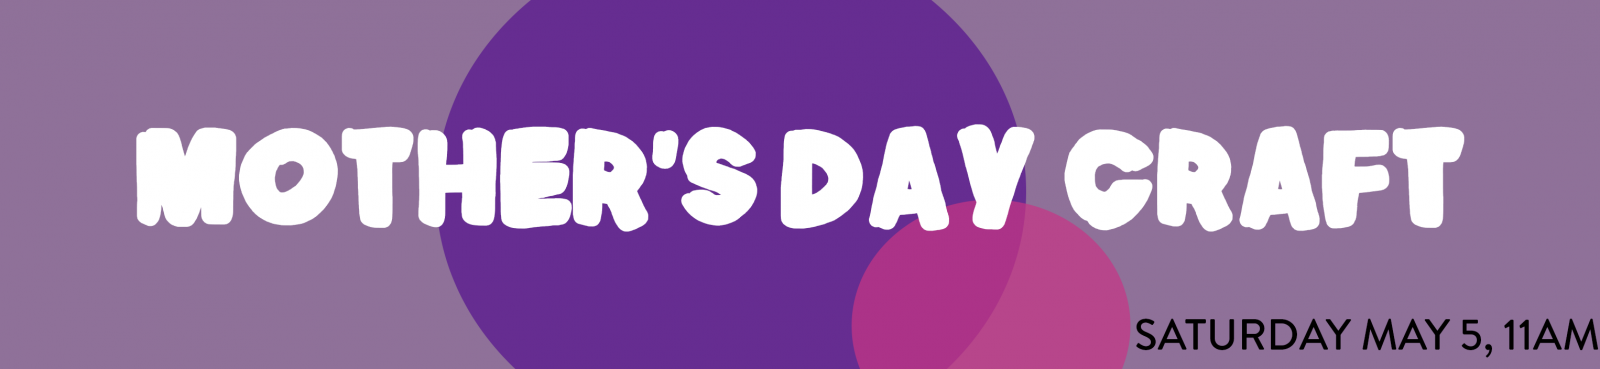 Kids Craft: Mother's Day, Saturday May 5th at 11am